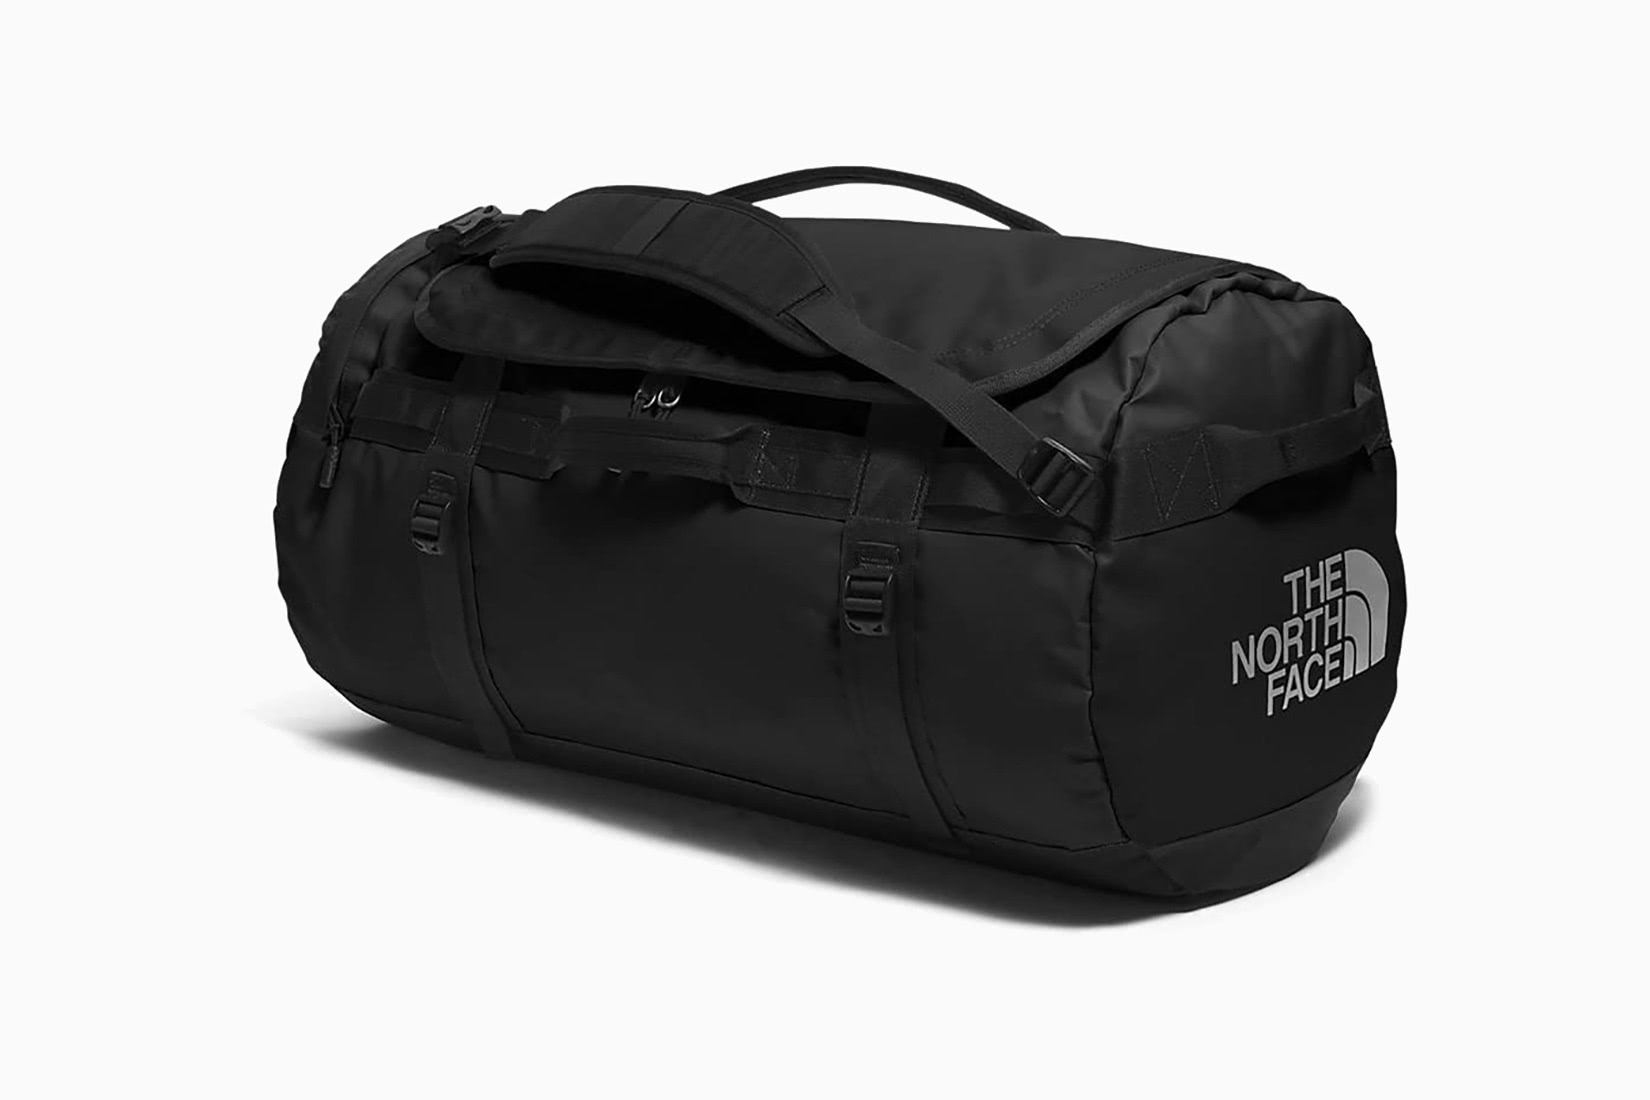 best duffel bags travel north face base camp - Luxe Digital